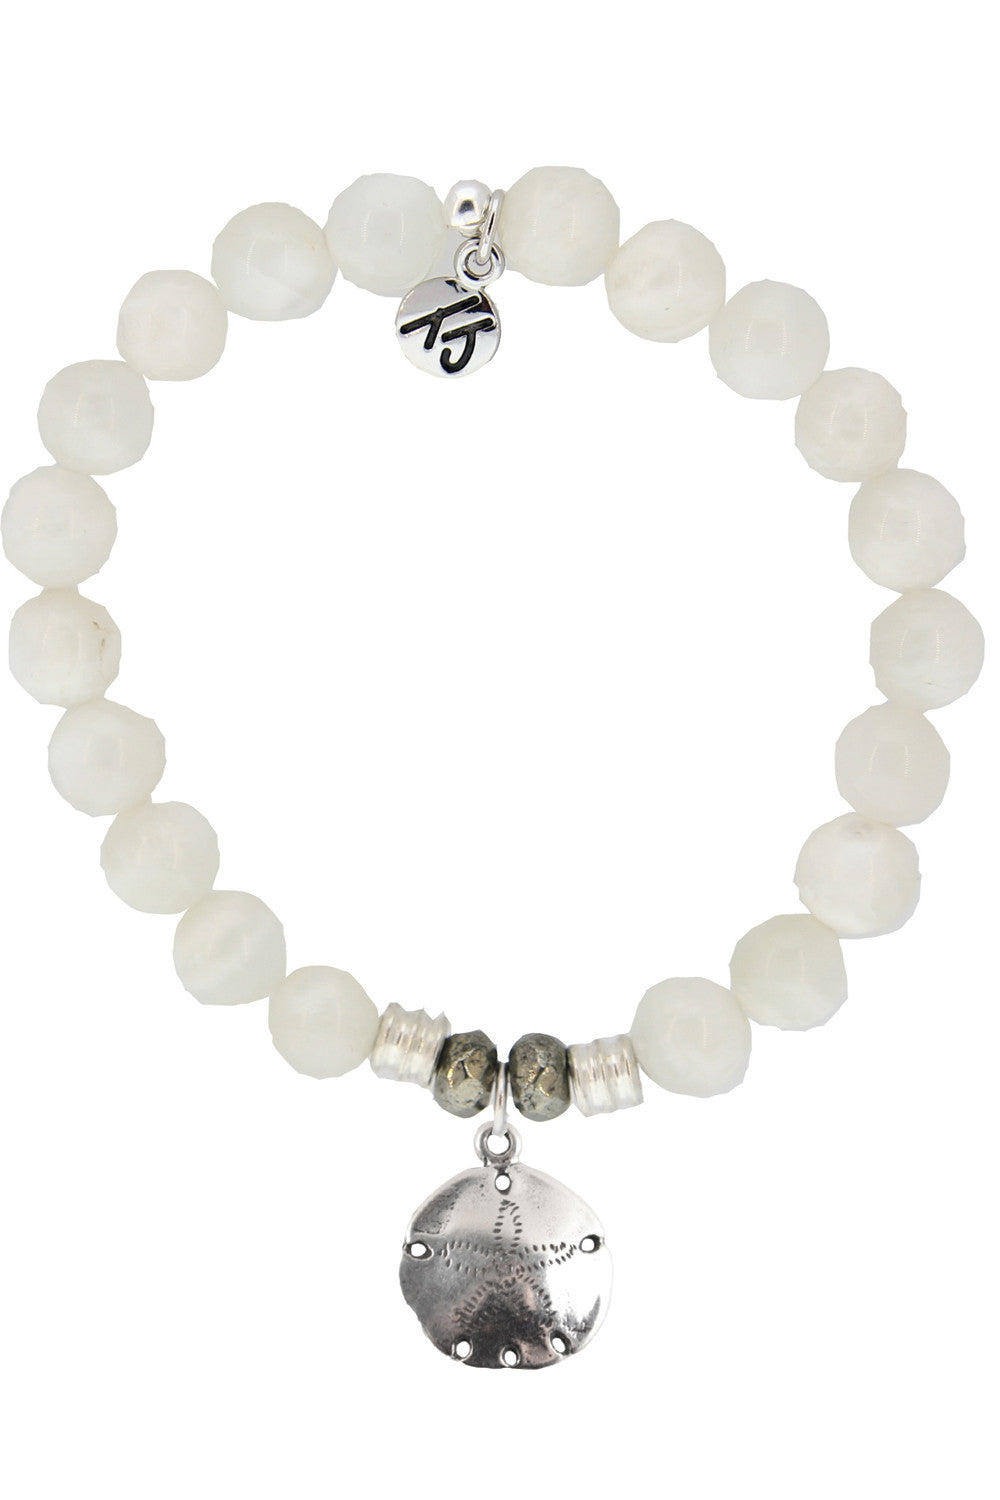 TJ Beaded Bracelet - Moonstone Stones